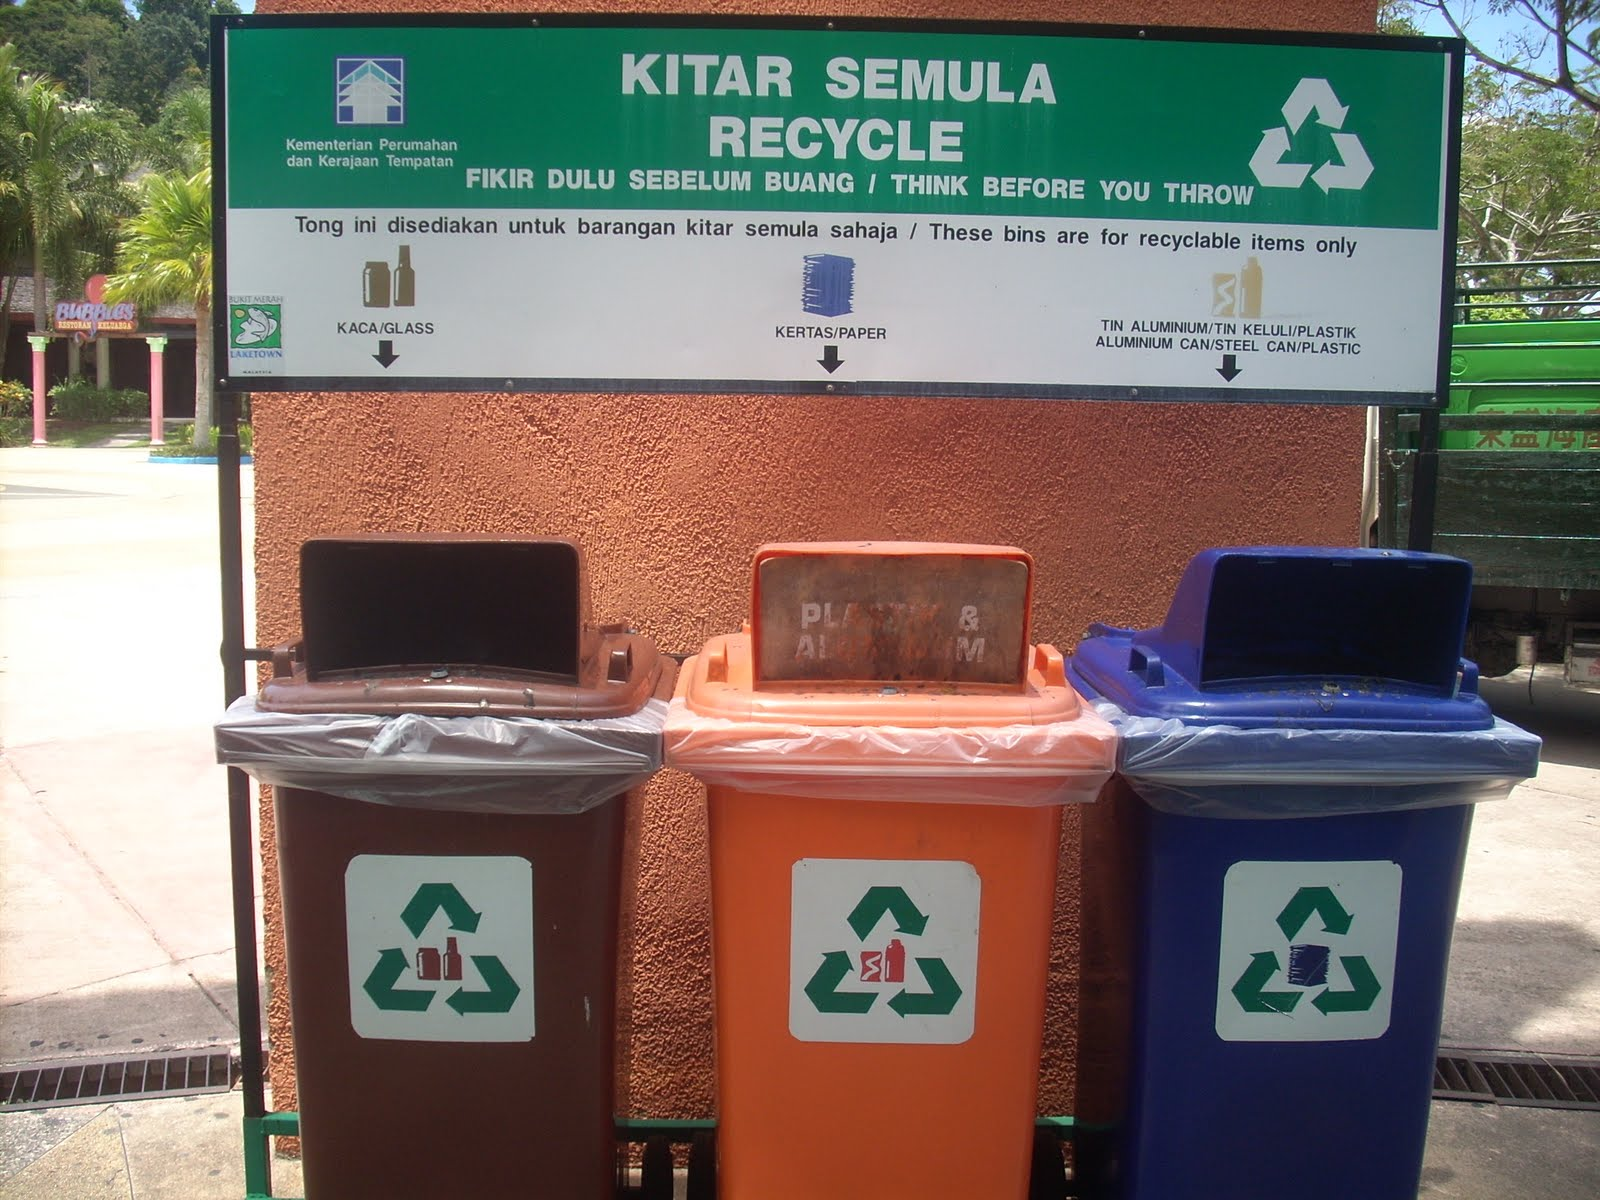 Image from Recycling Rangers